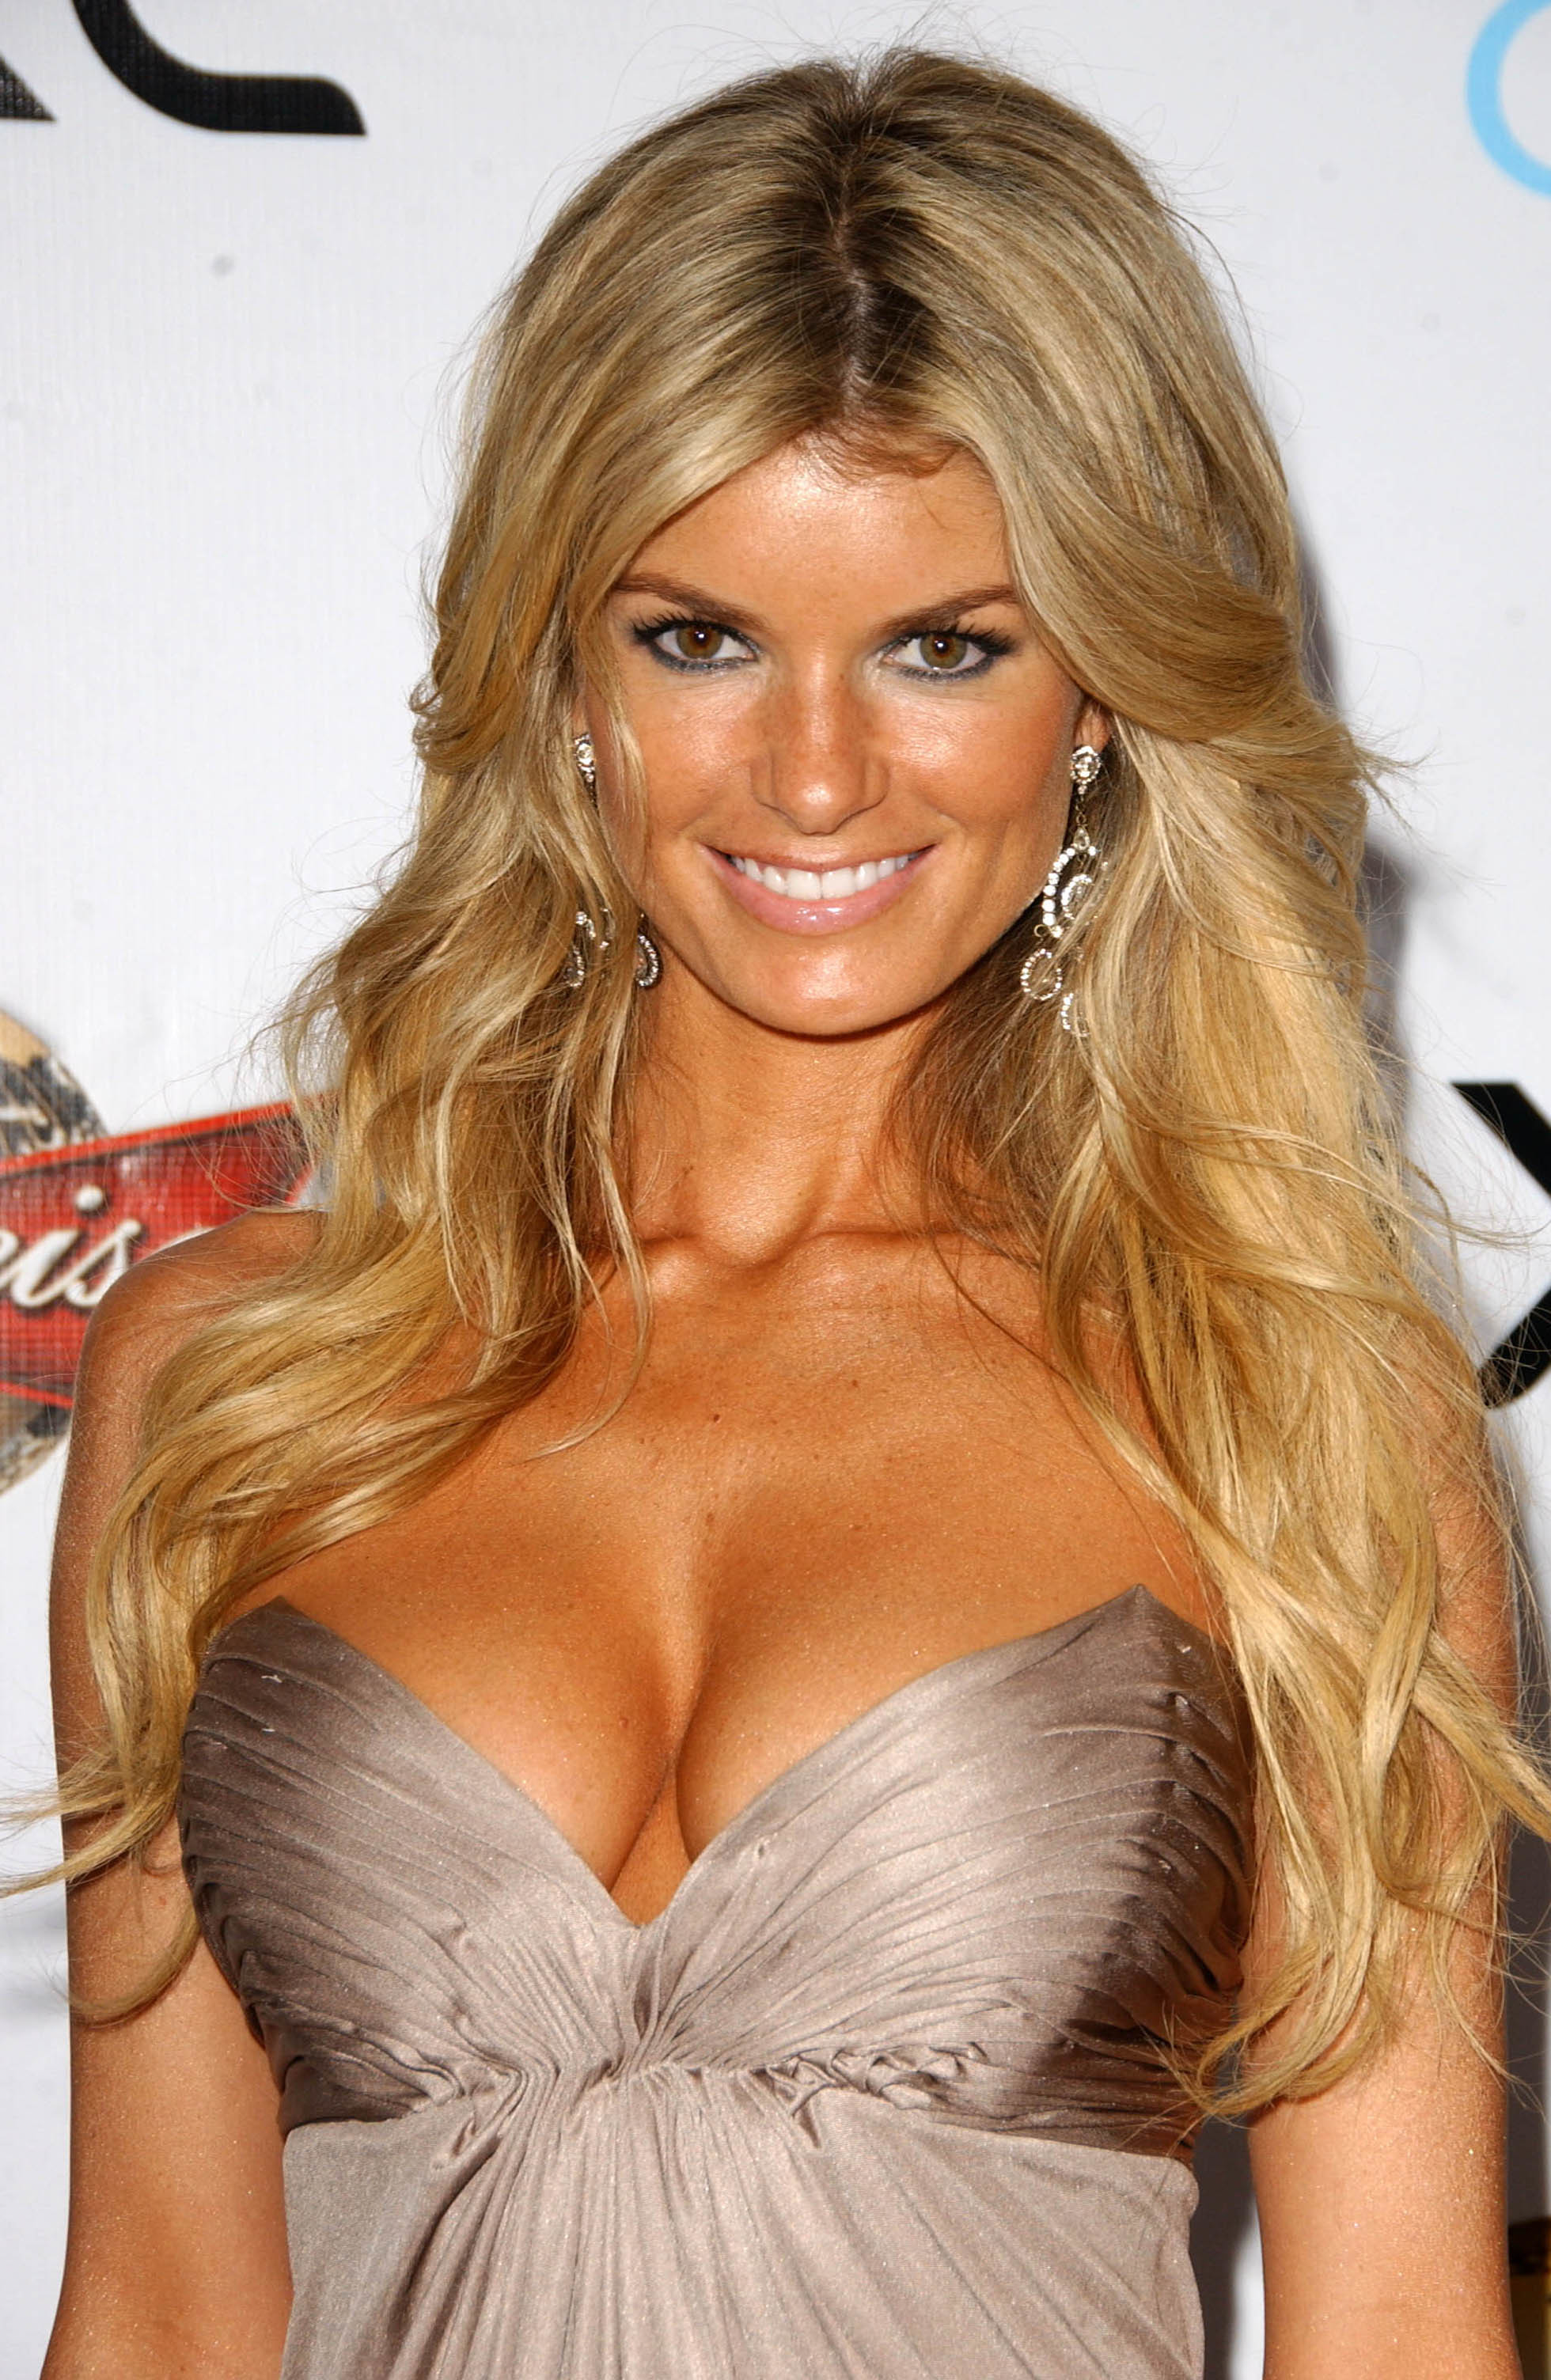 Res: 1960x3008, Marisa Miller Backgrounds on Walls Cover